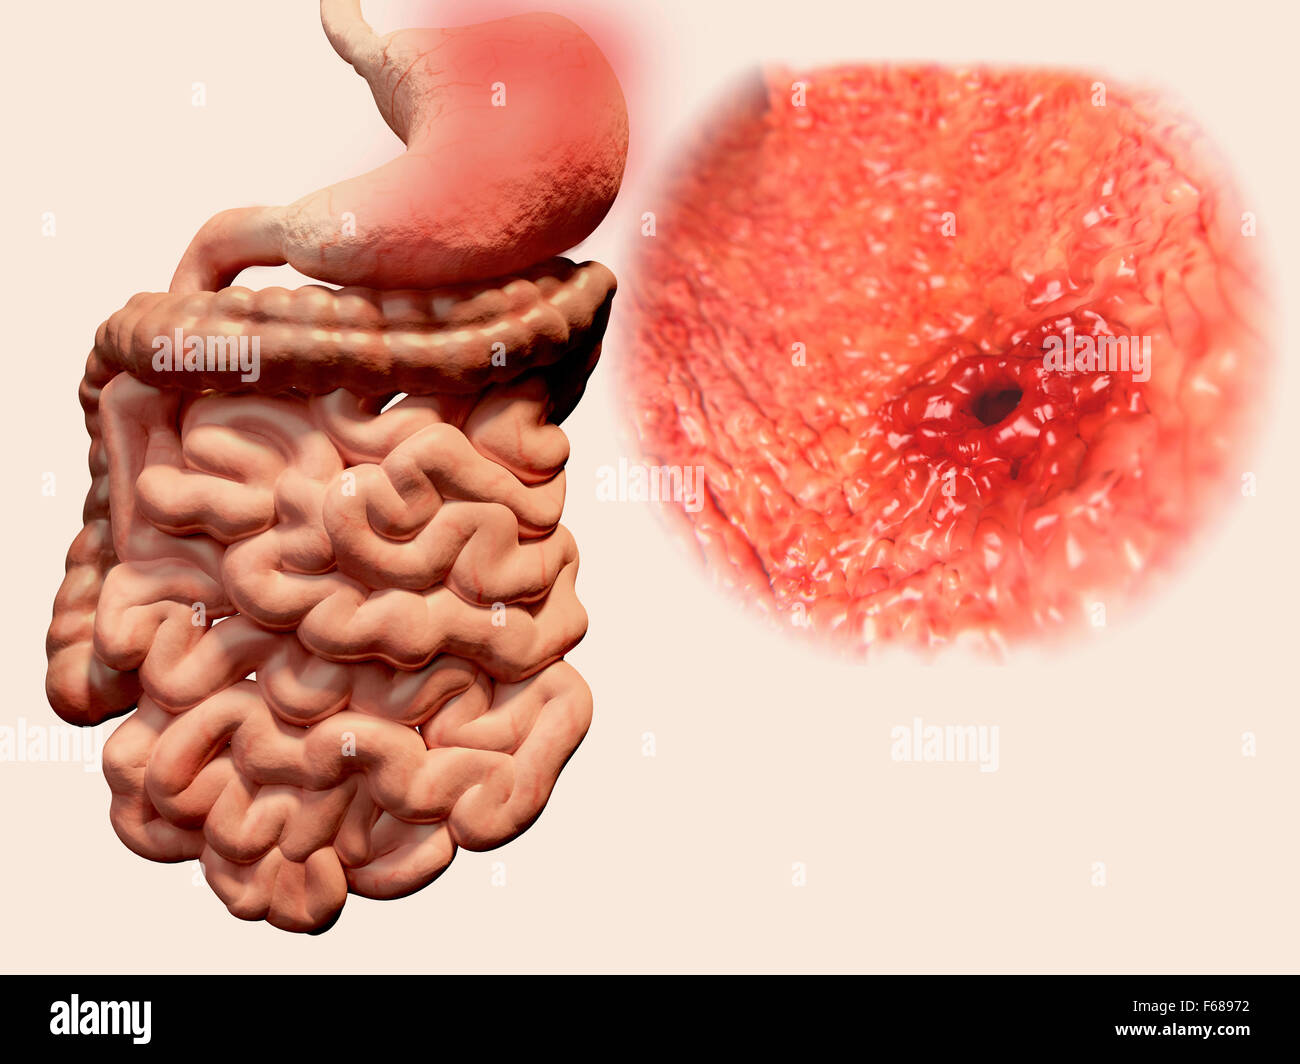 Gastric Stomach Ulcer Illustration Gastric Or Peptic Ulcers